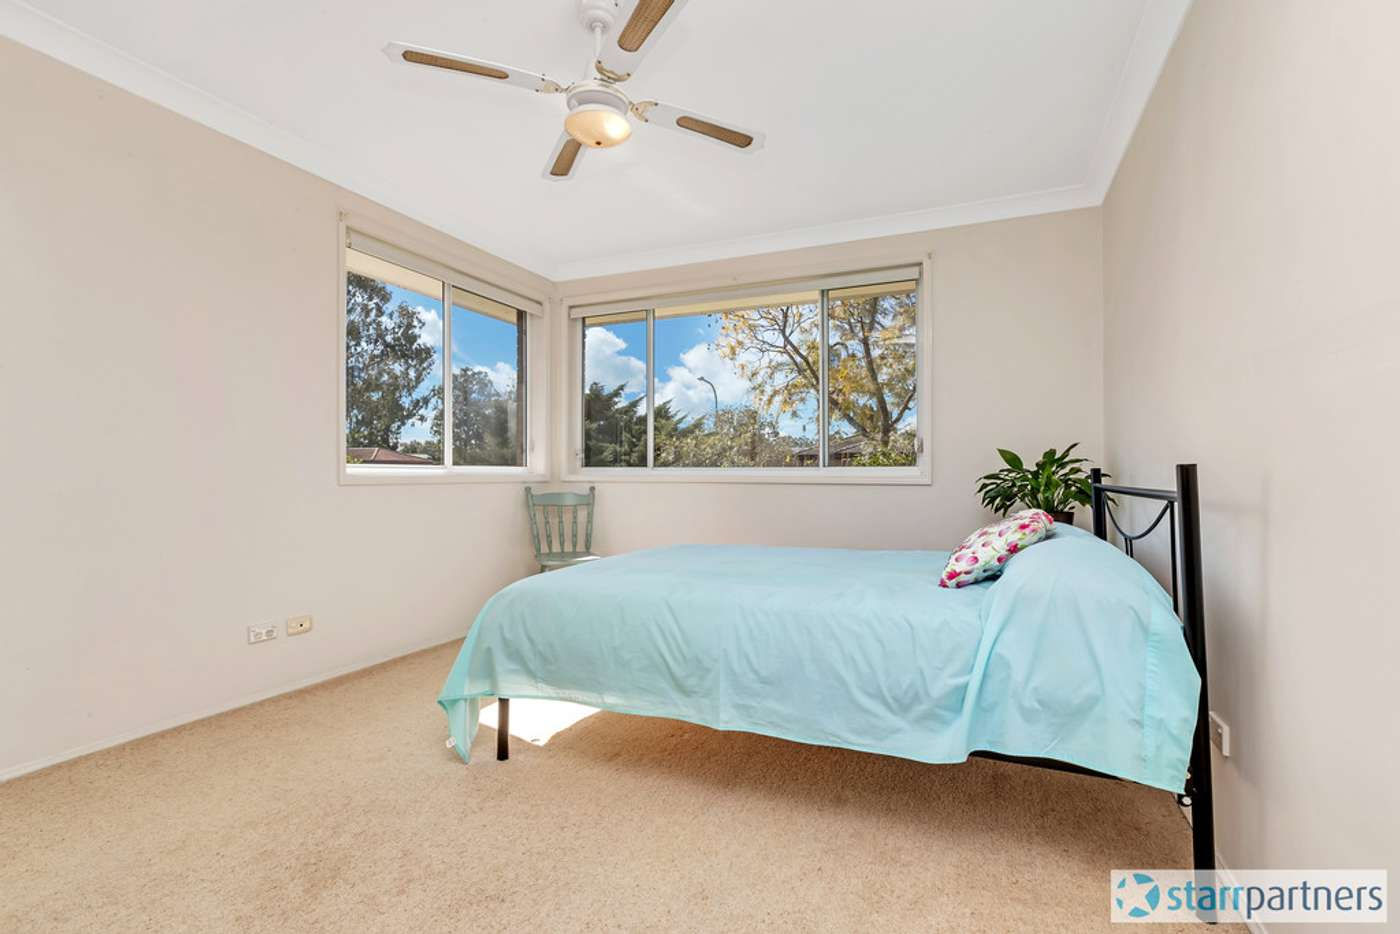 Sixth view of Homely house listing, 29 Scarvell Avenue, Mcgraths Hill NSW 2756